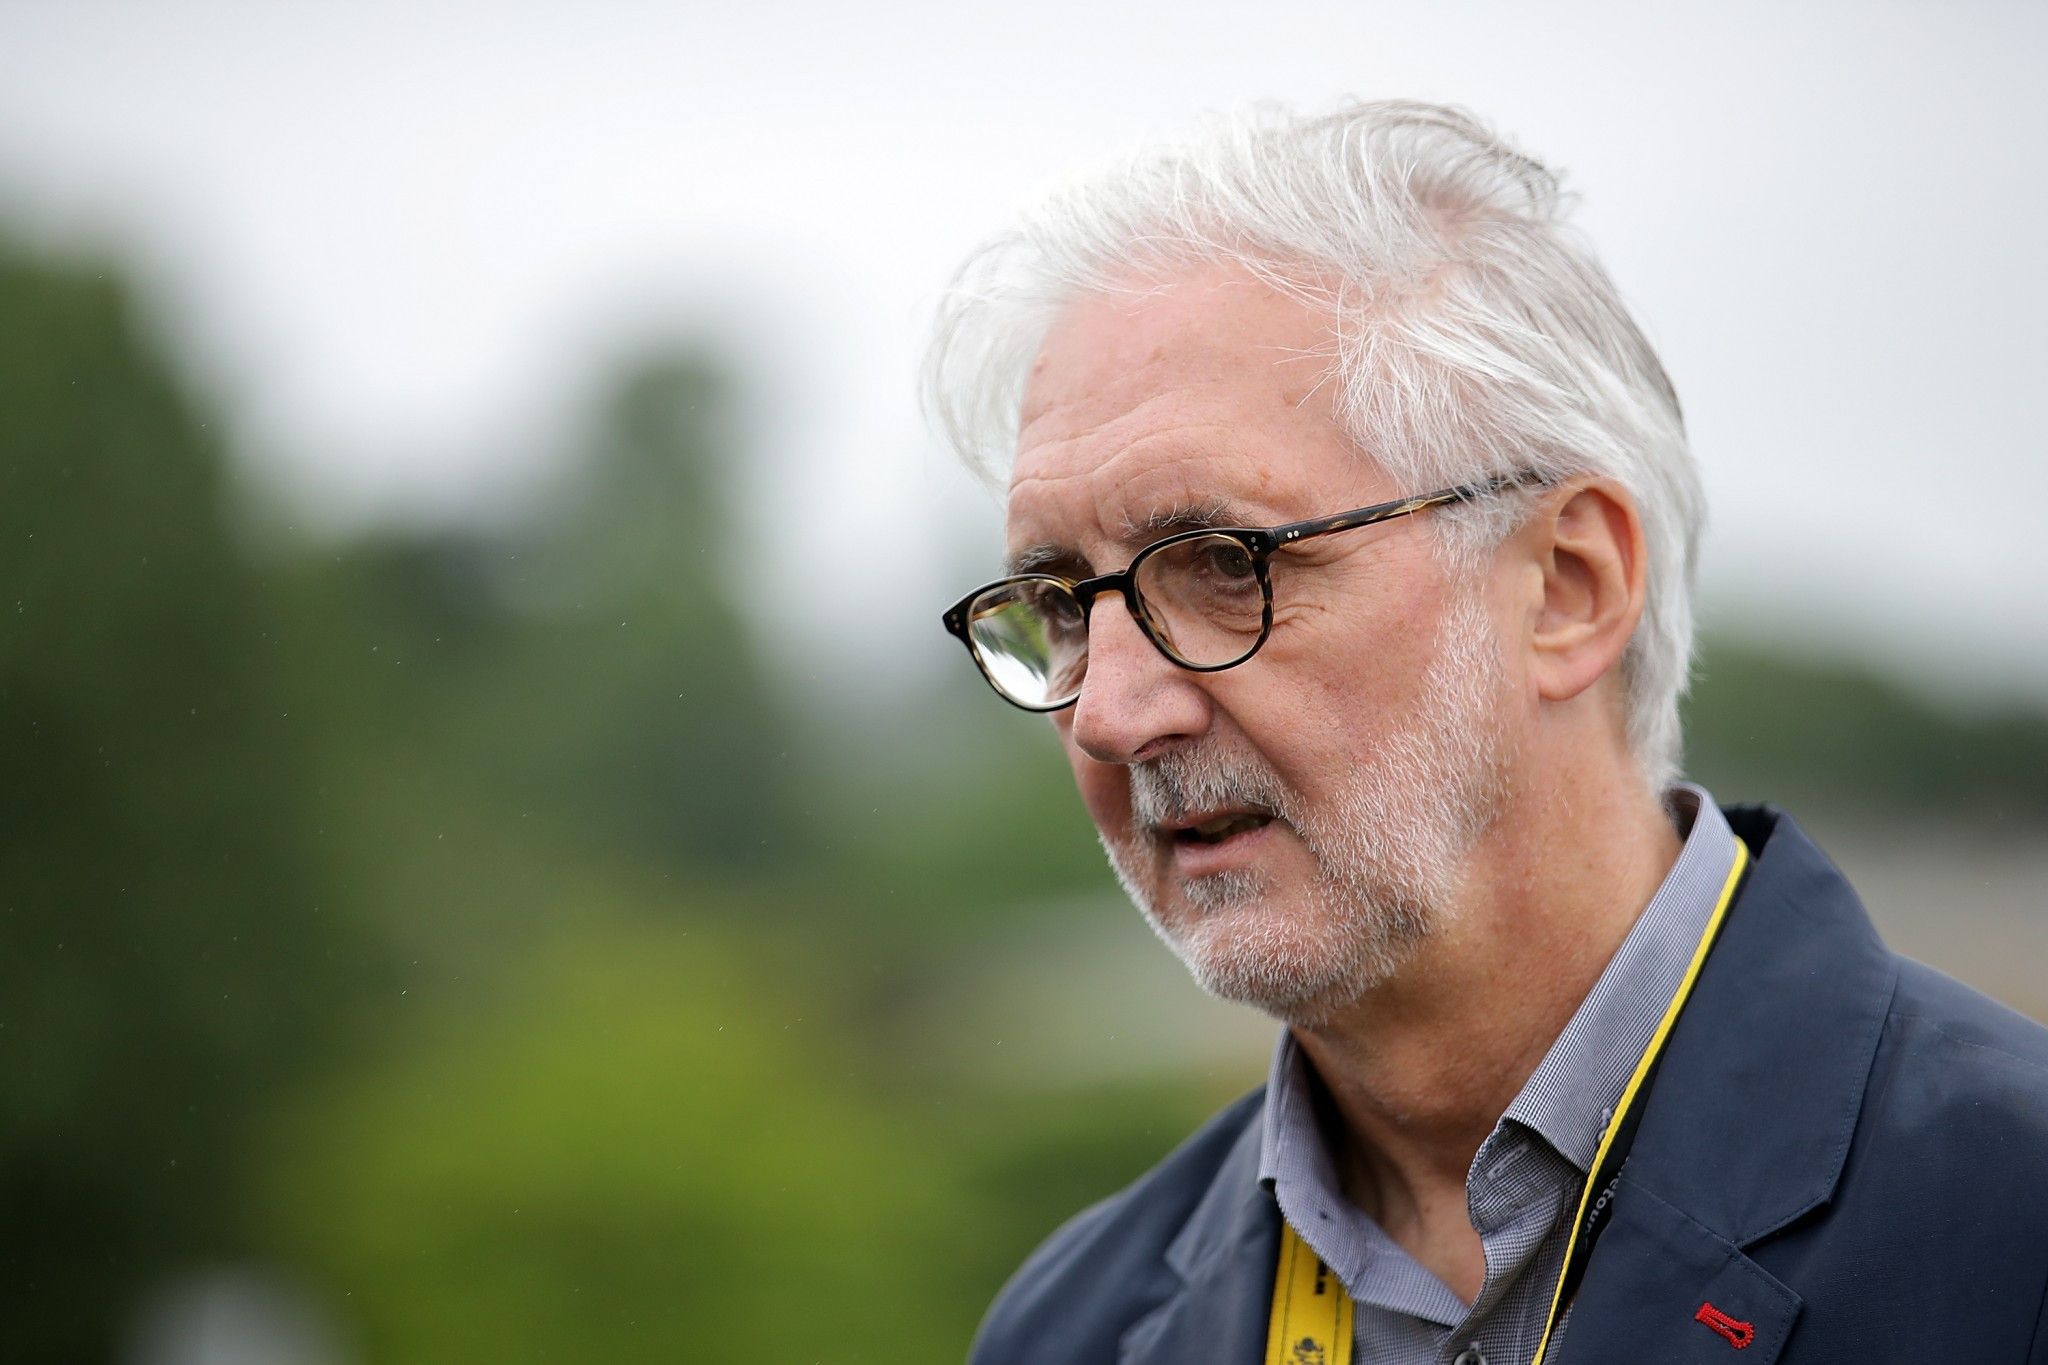 Brian Cookson, who is seeking re-election as UCI President, has hit back over comments made by rival David Lappartient ©Getty Images